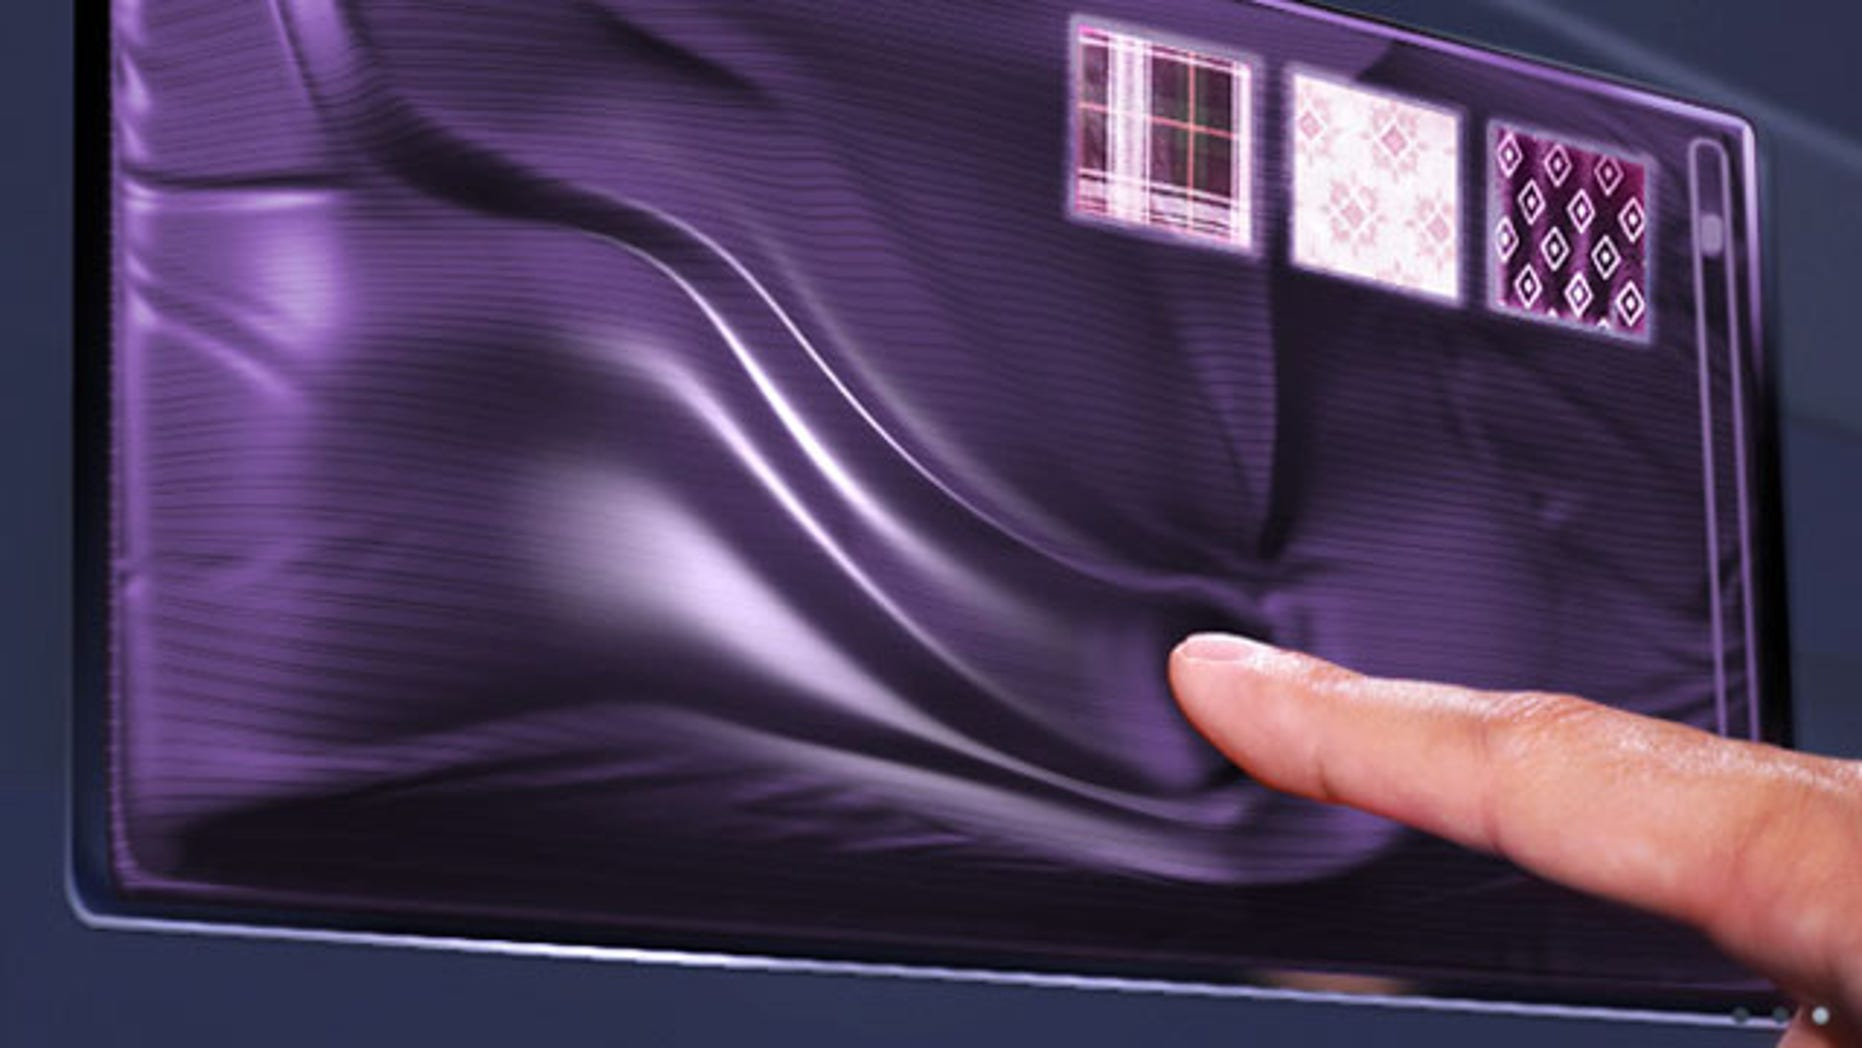 Haptic touch screens come alive with textures, contours and edges that users can feel.